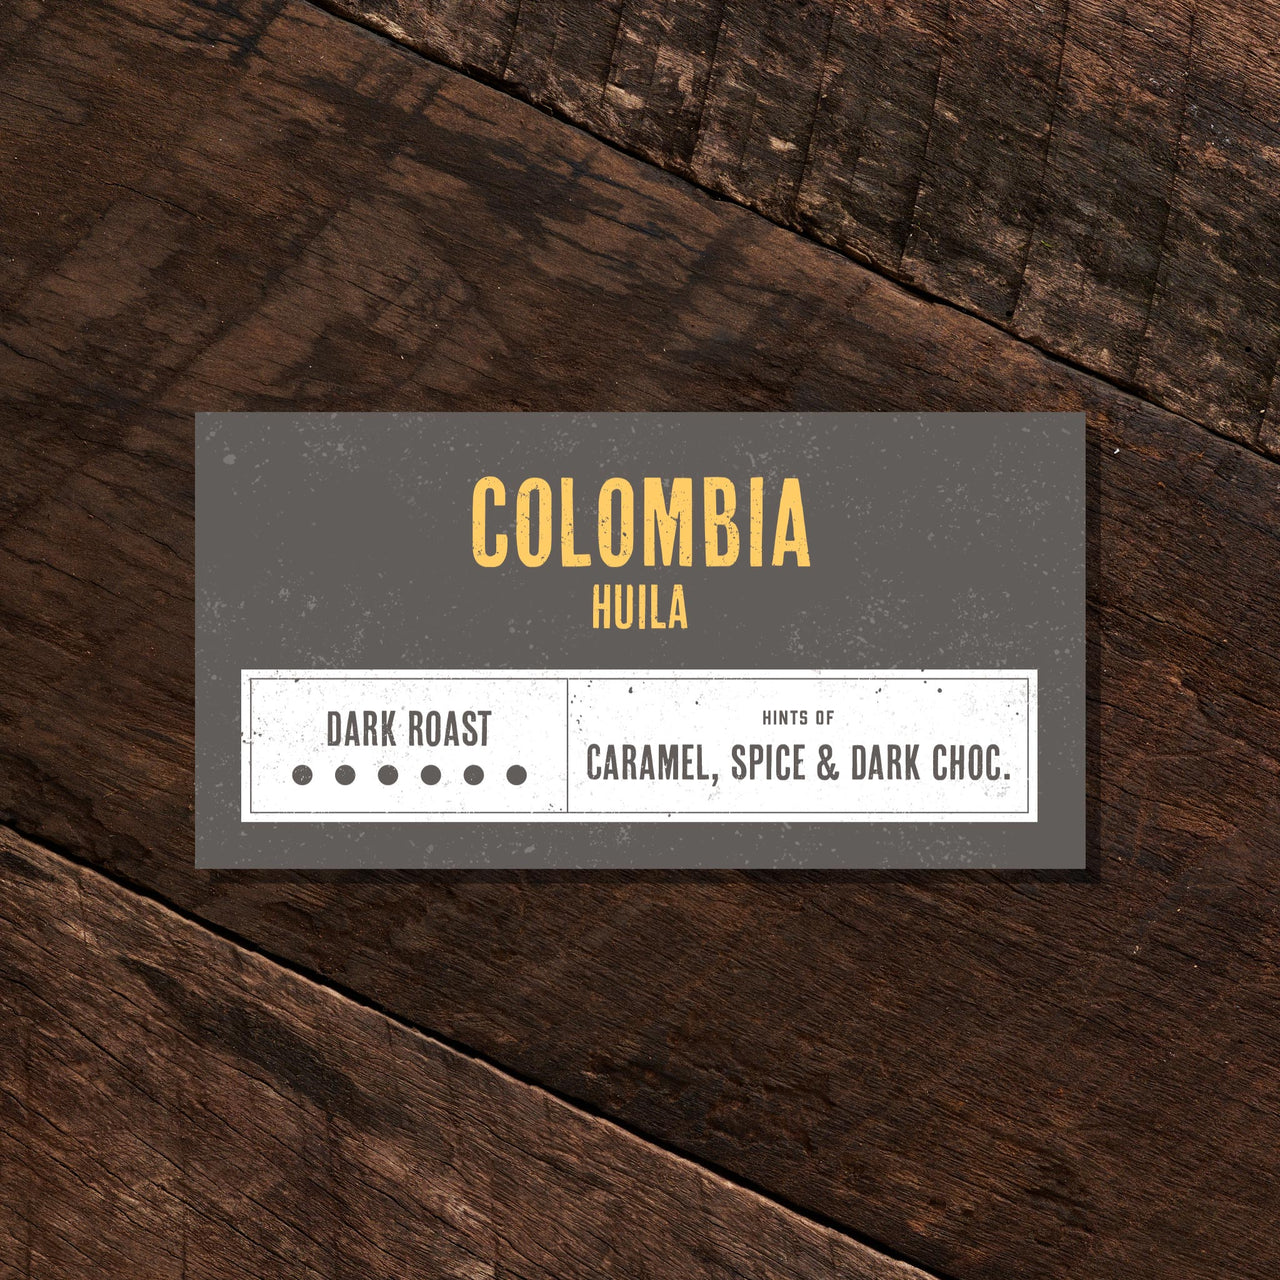 Colombia Huila – Dark Roast